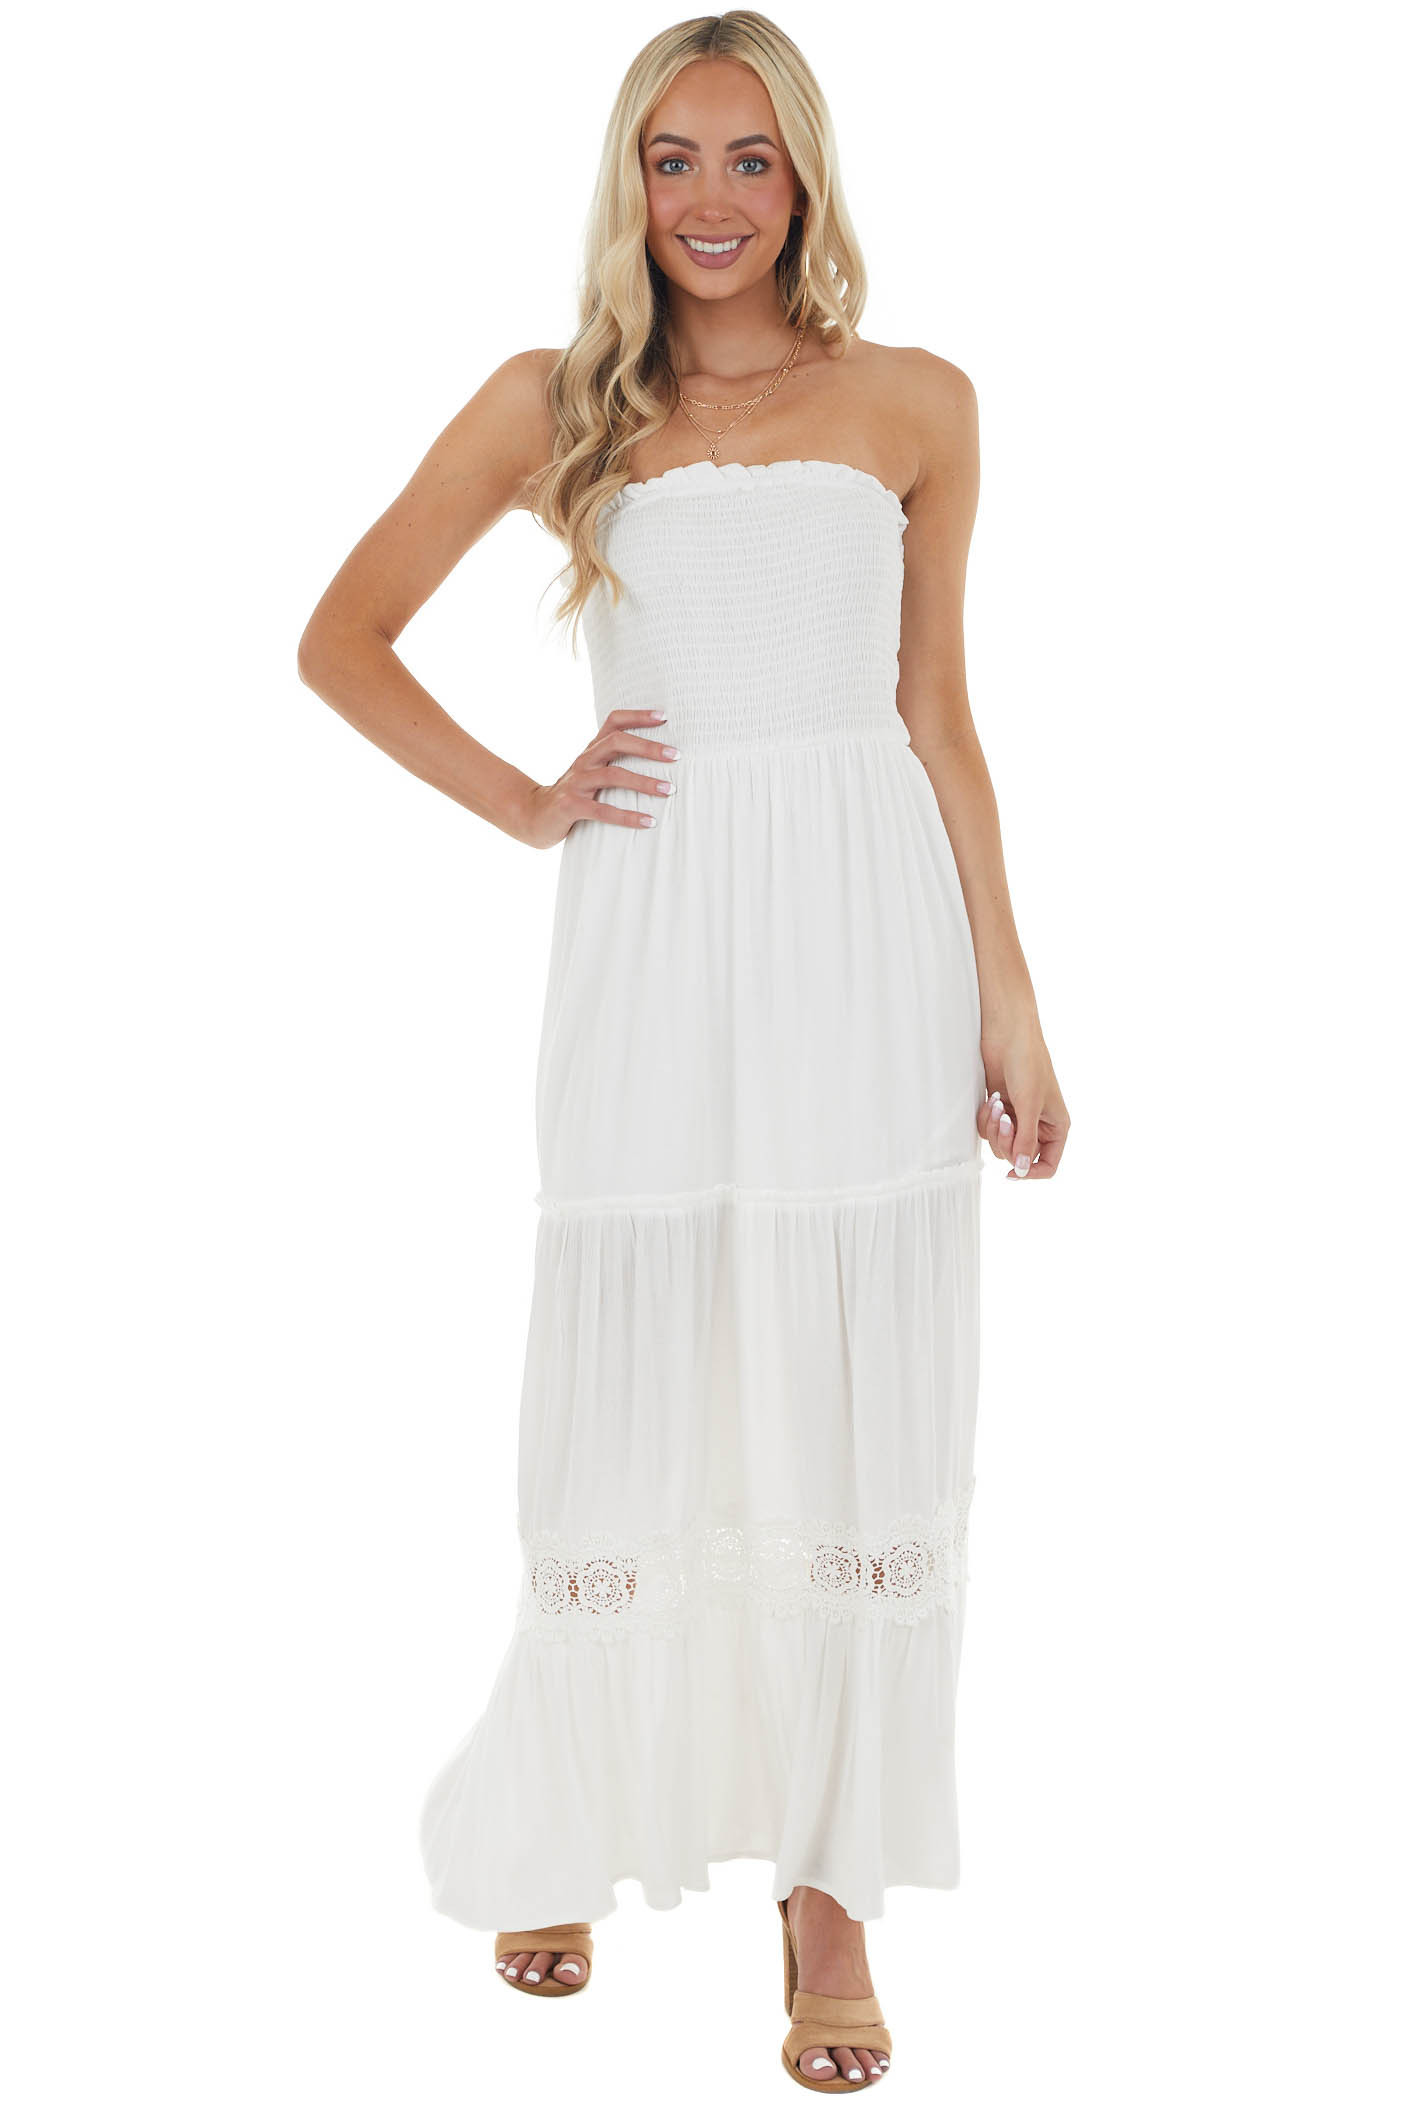 Ivory Tube Top Maxi Dress with Smocked and Lace Details